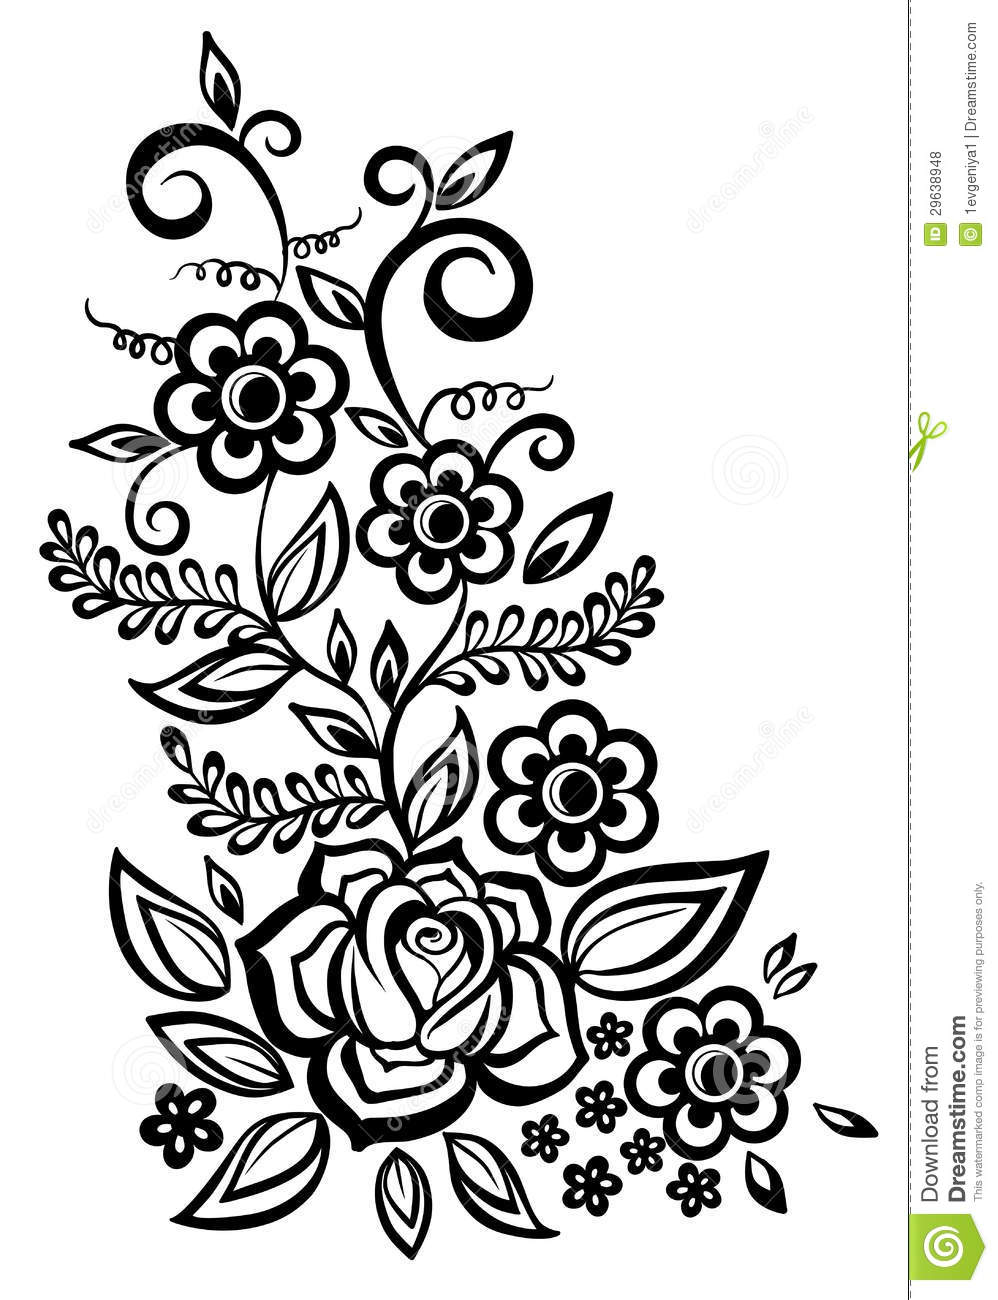 Black And White Flowers And Leaves Design Element Stock Vector